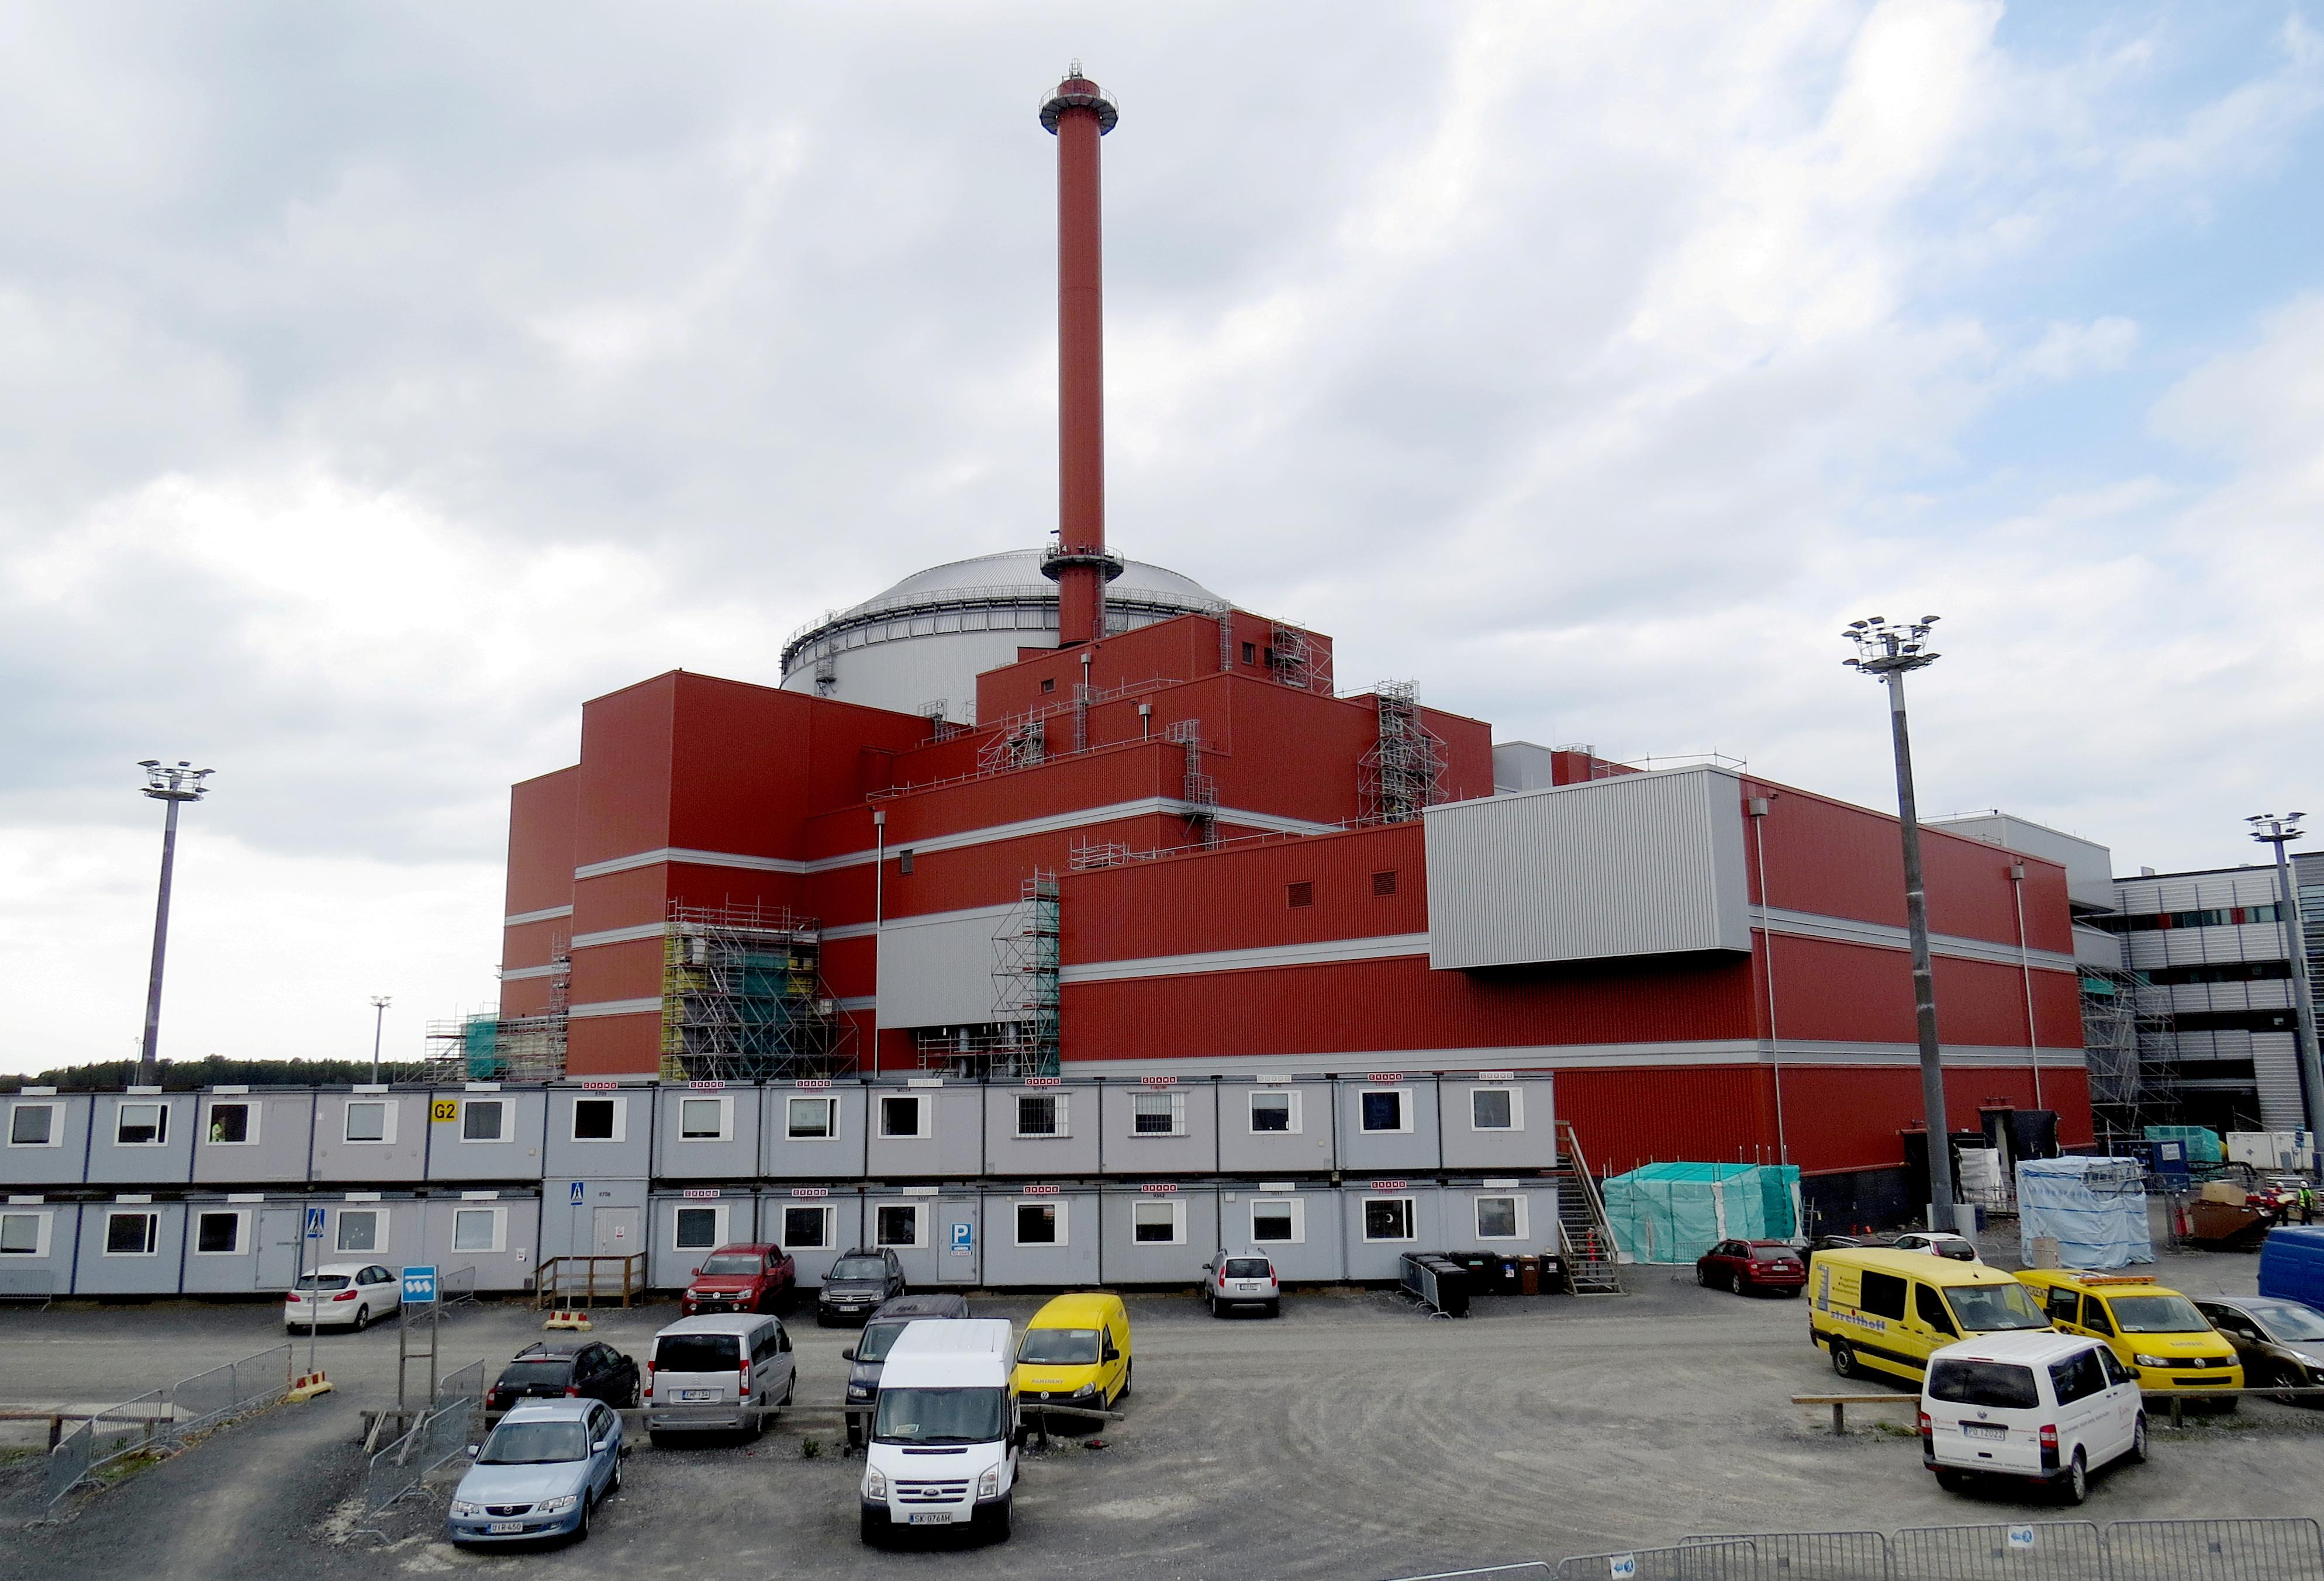 Finland's long-delayed Olkiluoto three nuclear reactor granted operating licence